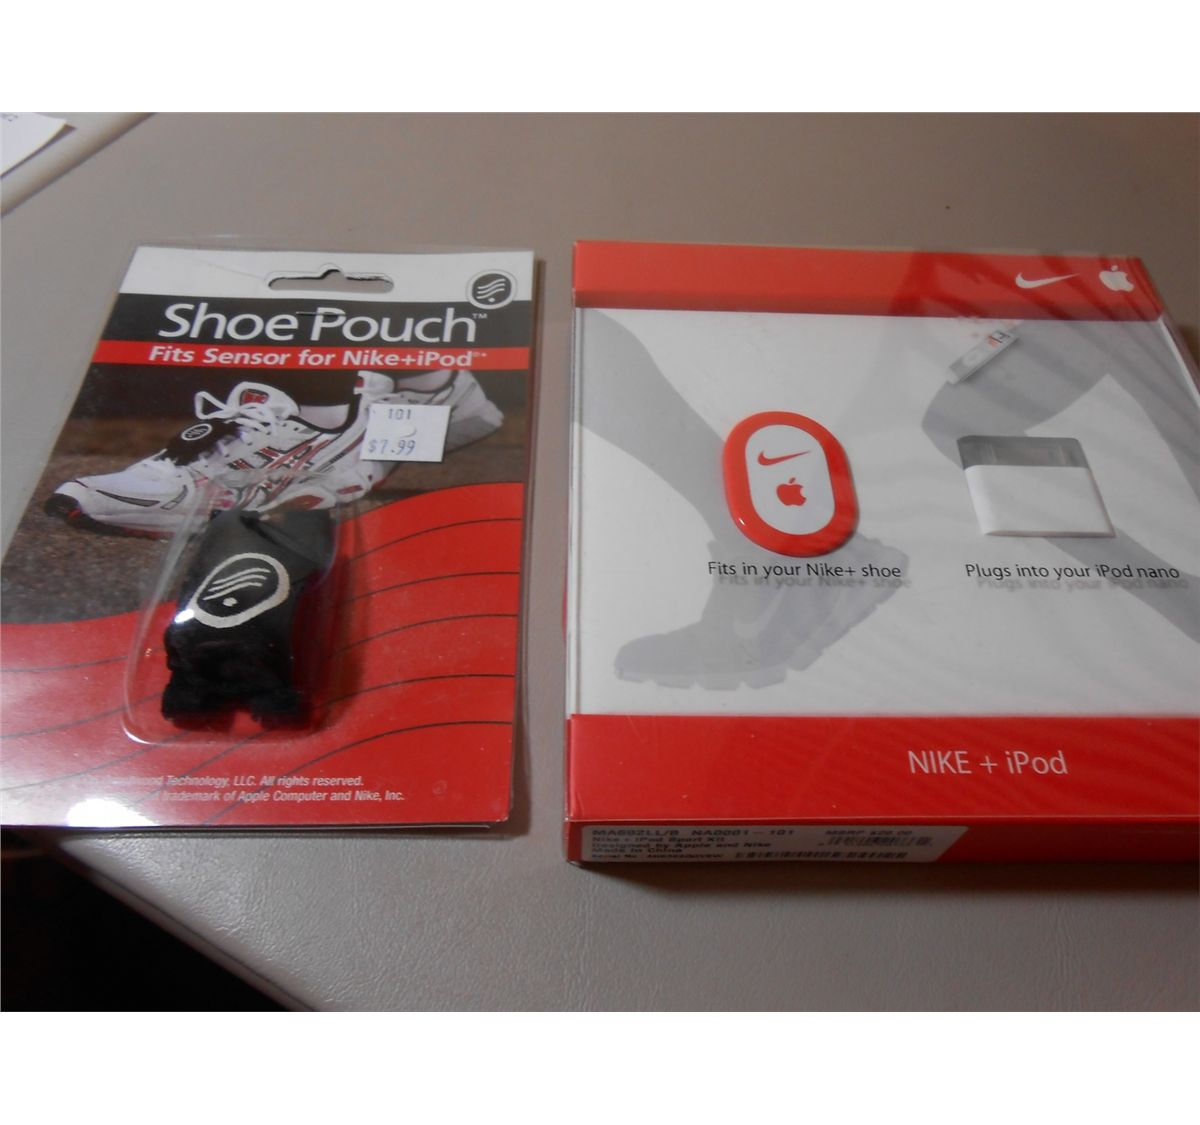 Nike + Ipod Sport Kit with Shoe Pouch for Sensor-Brand New and Never Opened!